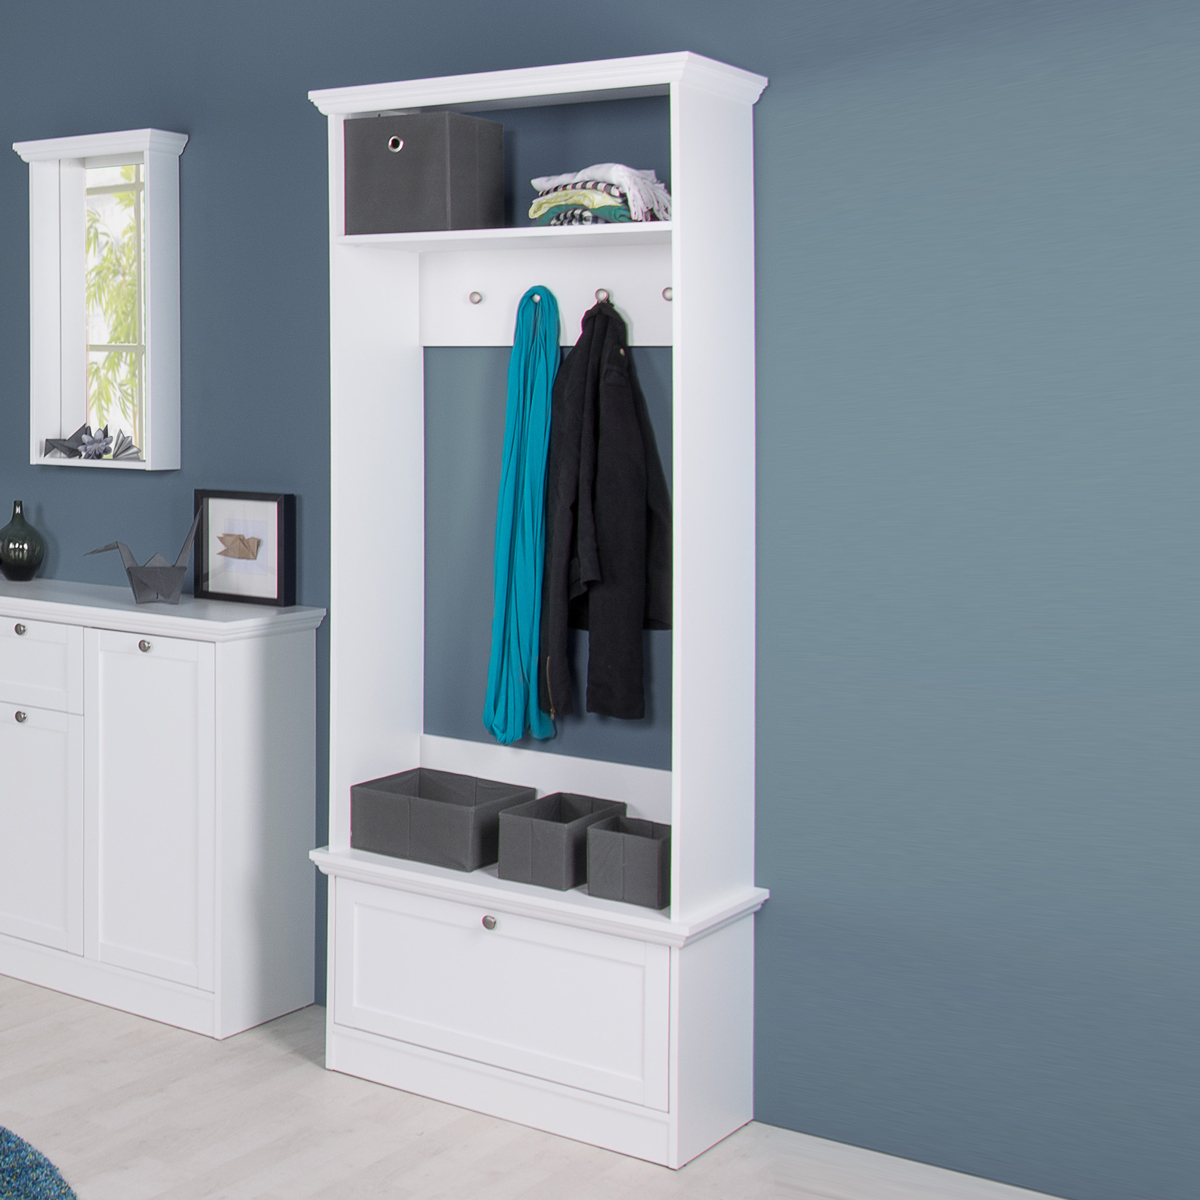 garderobe landwood 41 landhausstil flurgarderobe mit. Black Bedroom Furniture Sets. Home Design Ideas